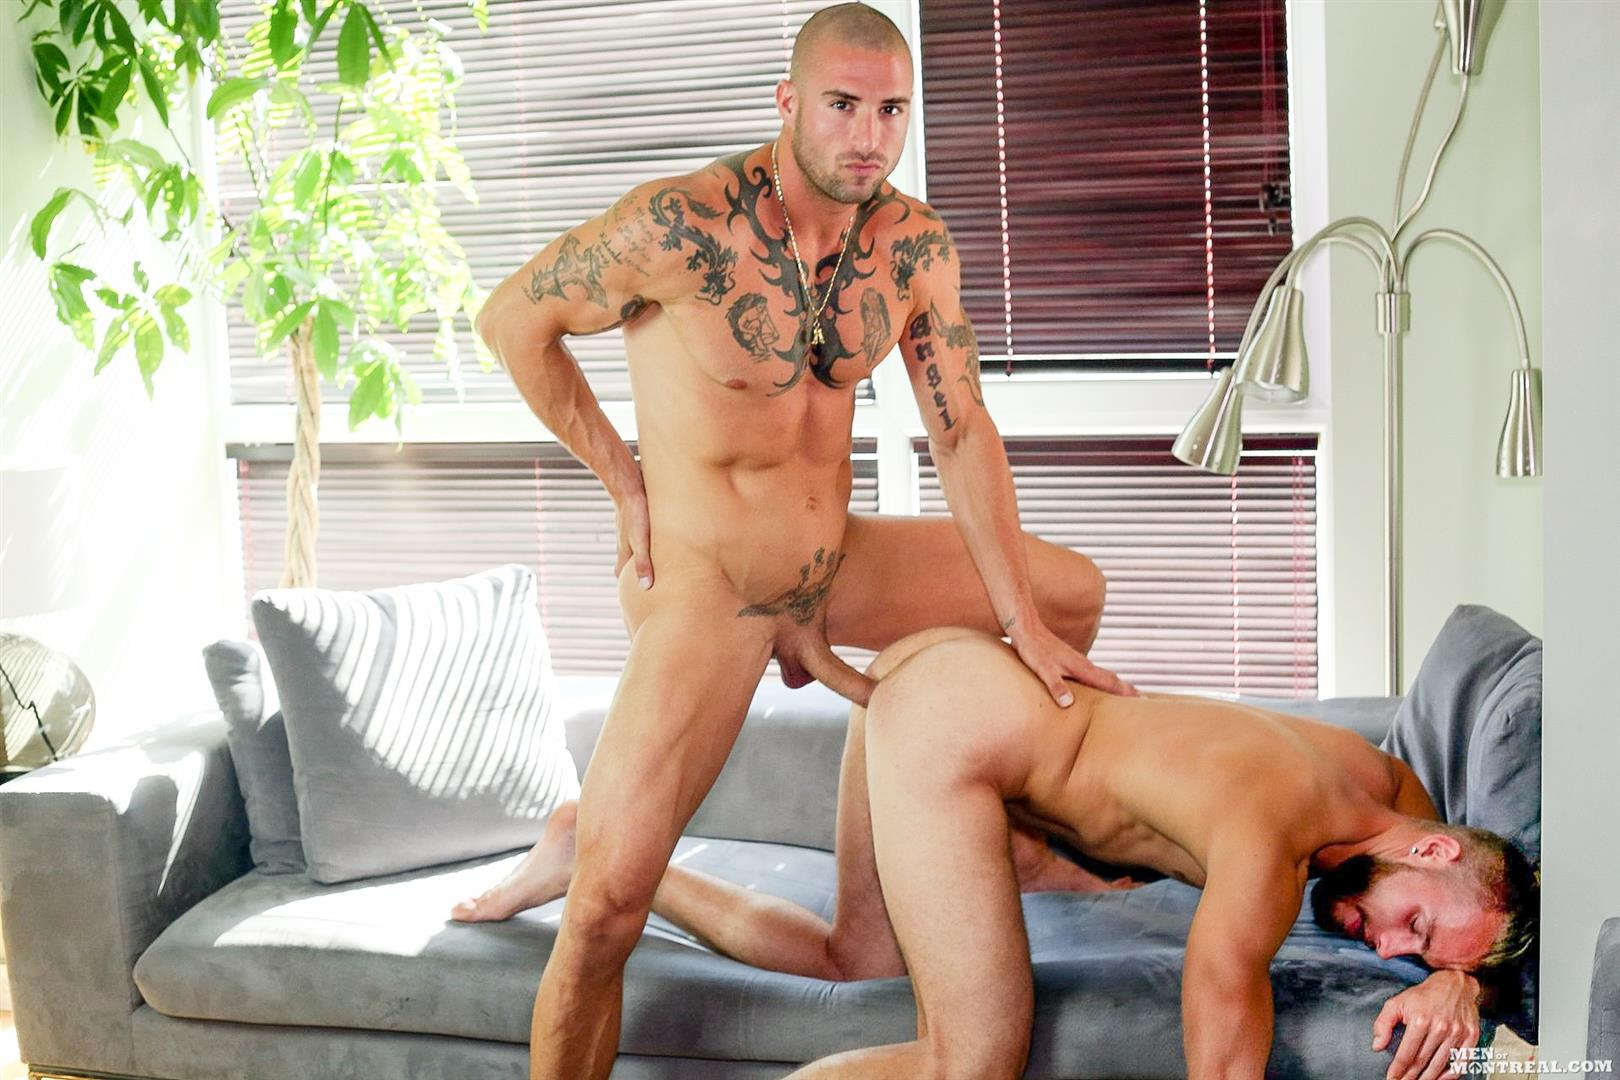 Men-of-Montreal-Kyle-Champagne-and-Derek-Thibeau-Big-Uncut-Cocks-Fucking-Amateur-Gay-Porn-13 Kyle Champagne Takes A Big Uncut Cock Up The Ass